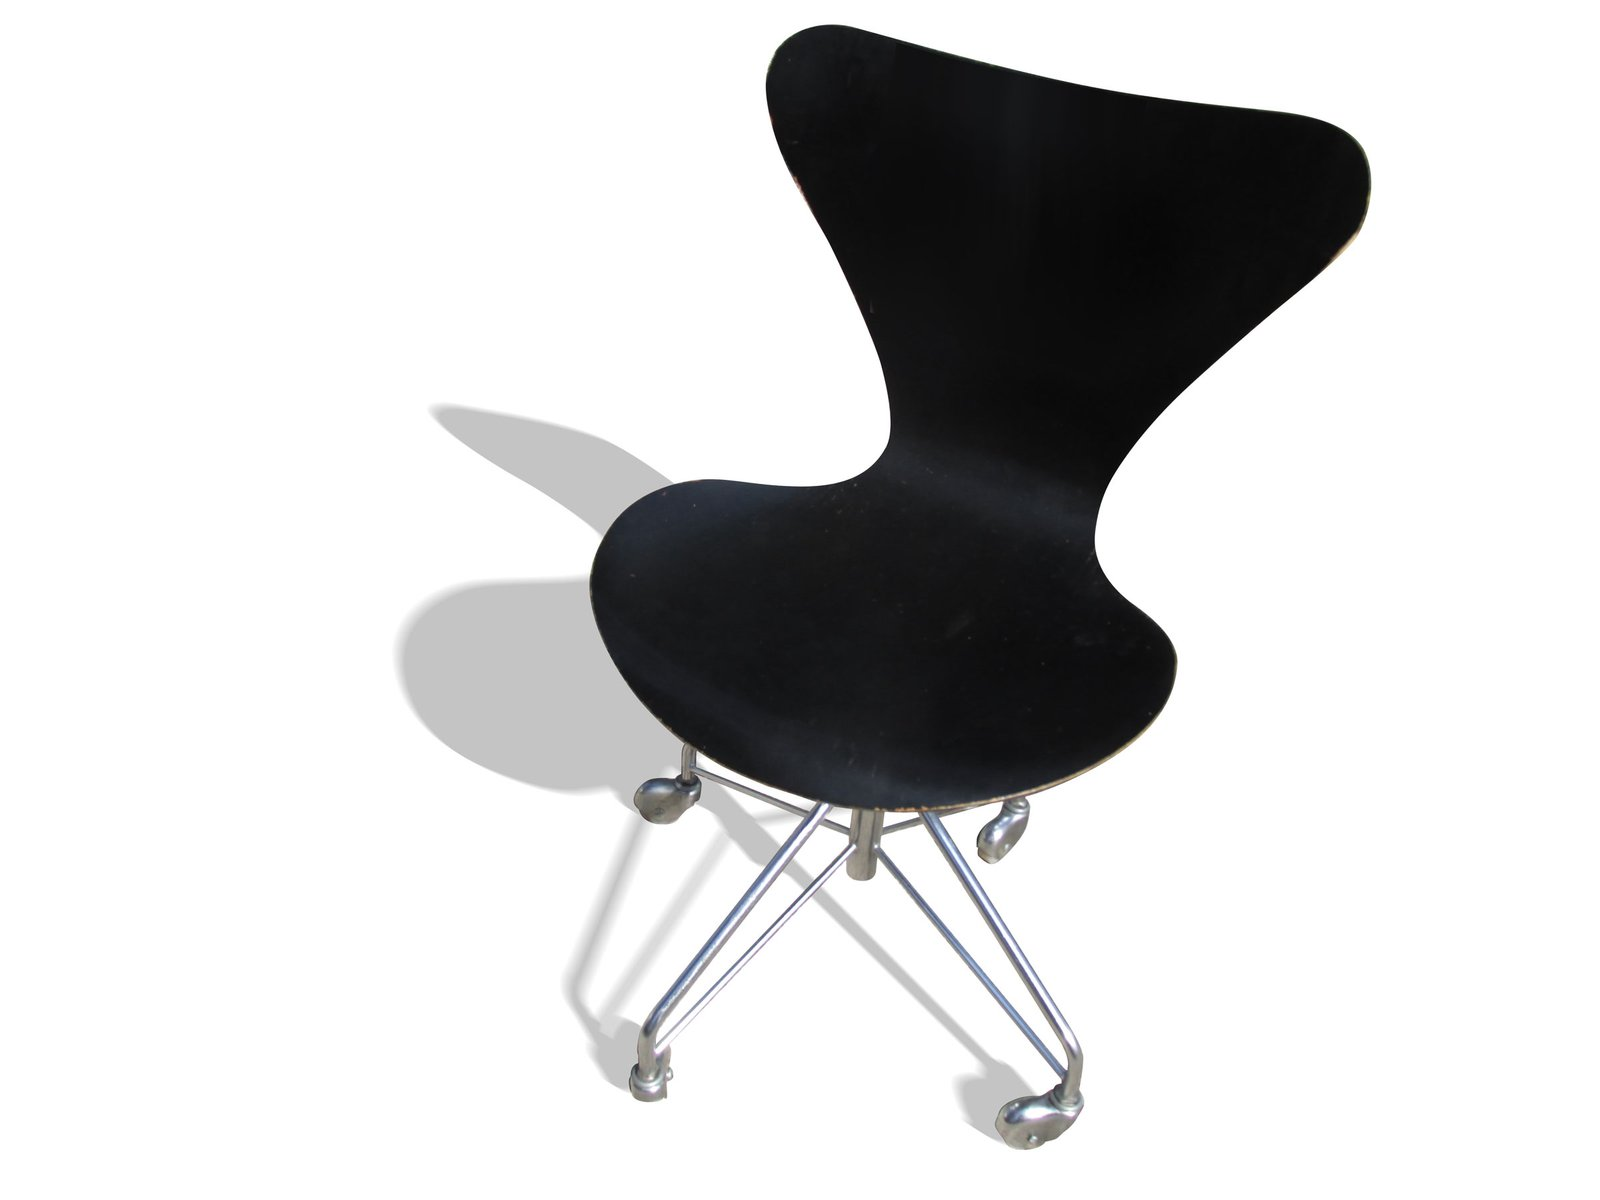 3117 chair by arne jacobsen for fritz hansen 1980s for. Black Bedroom Furniture Sets. Home Design Ideas